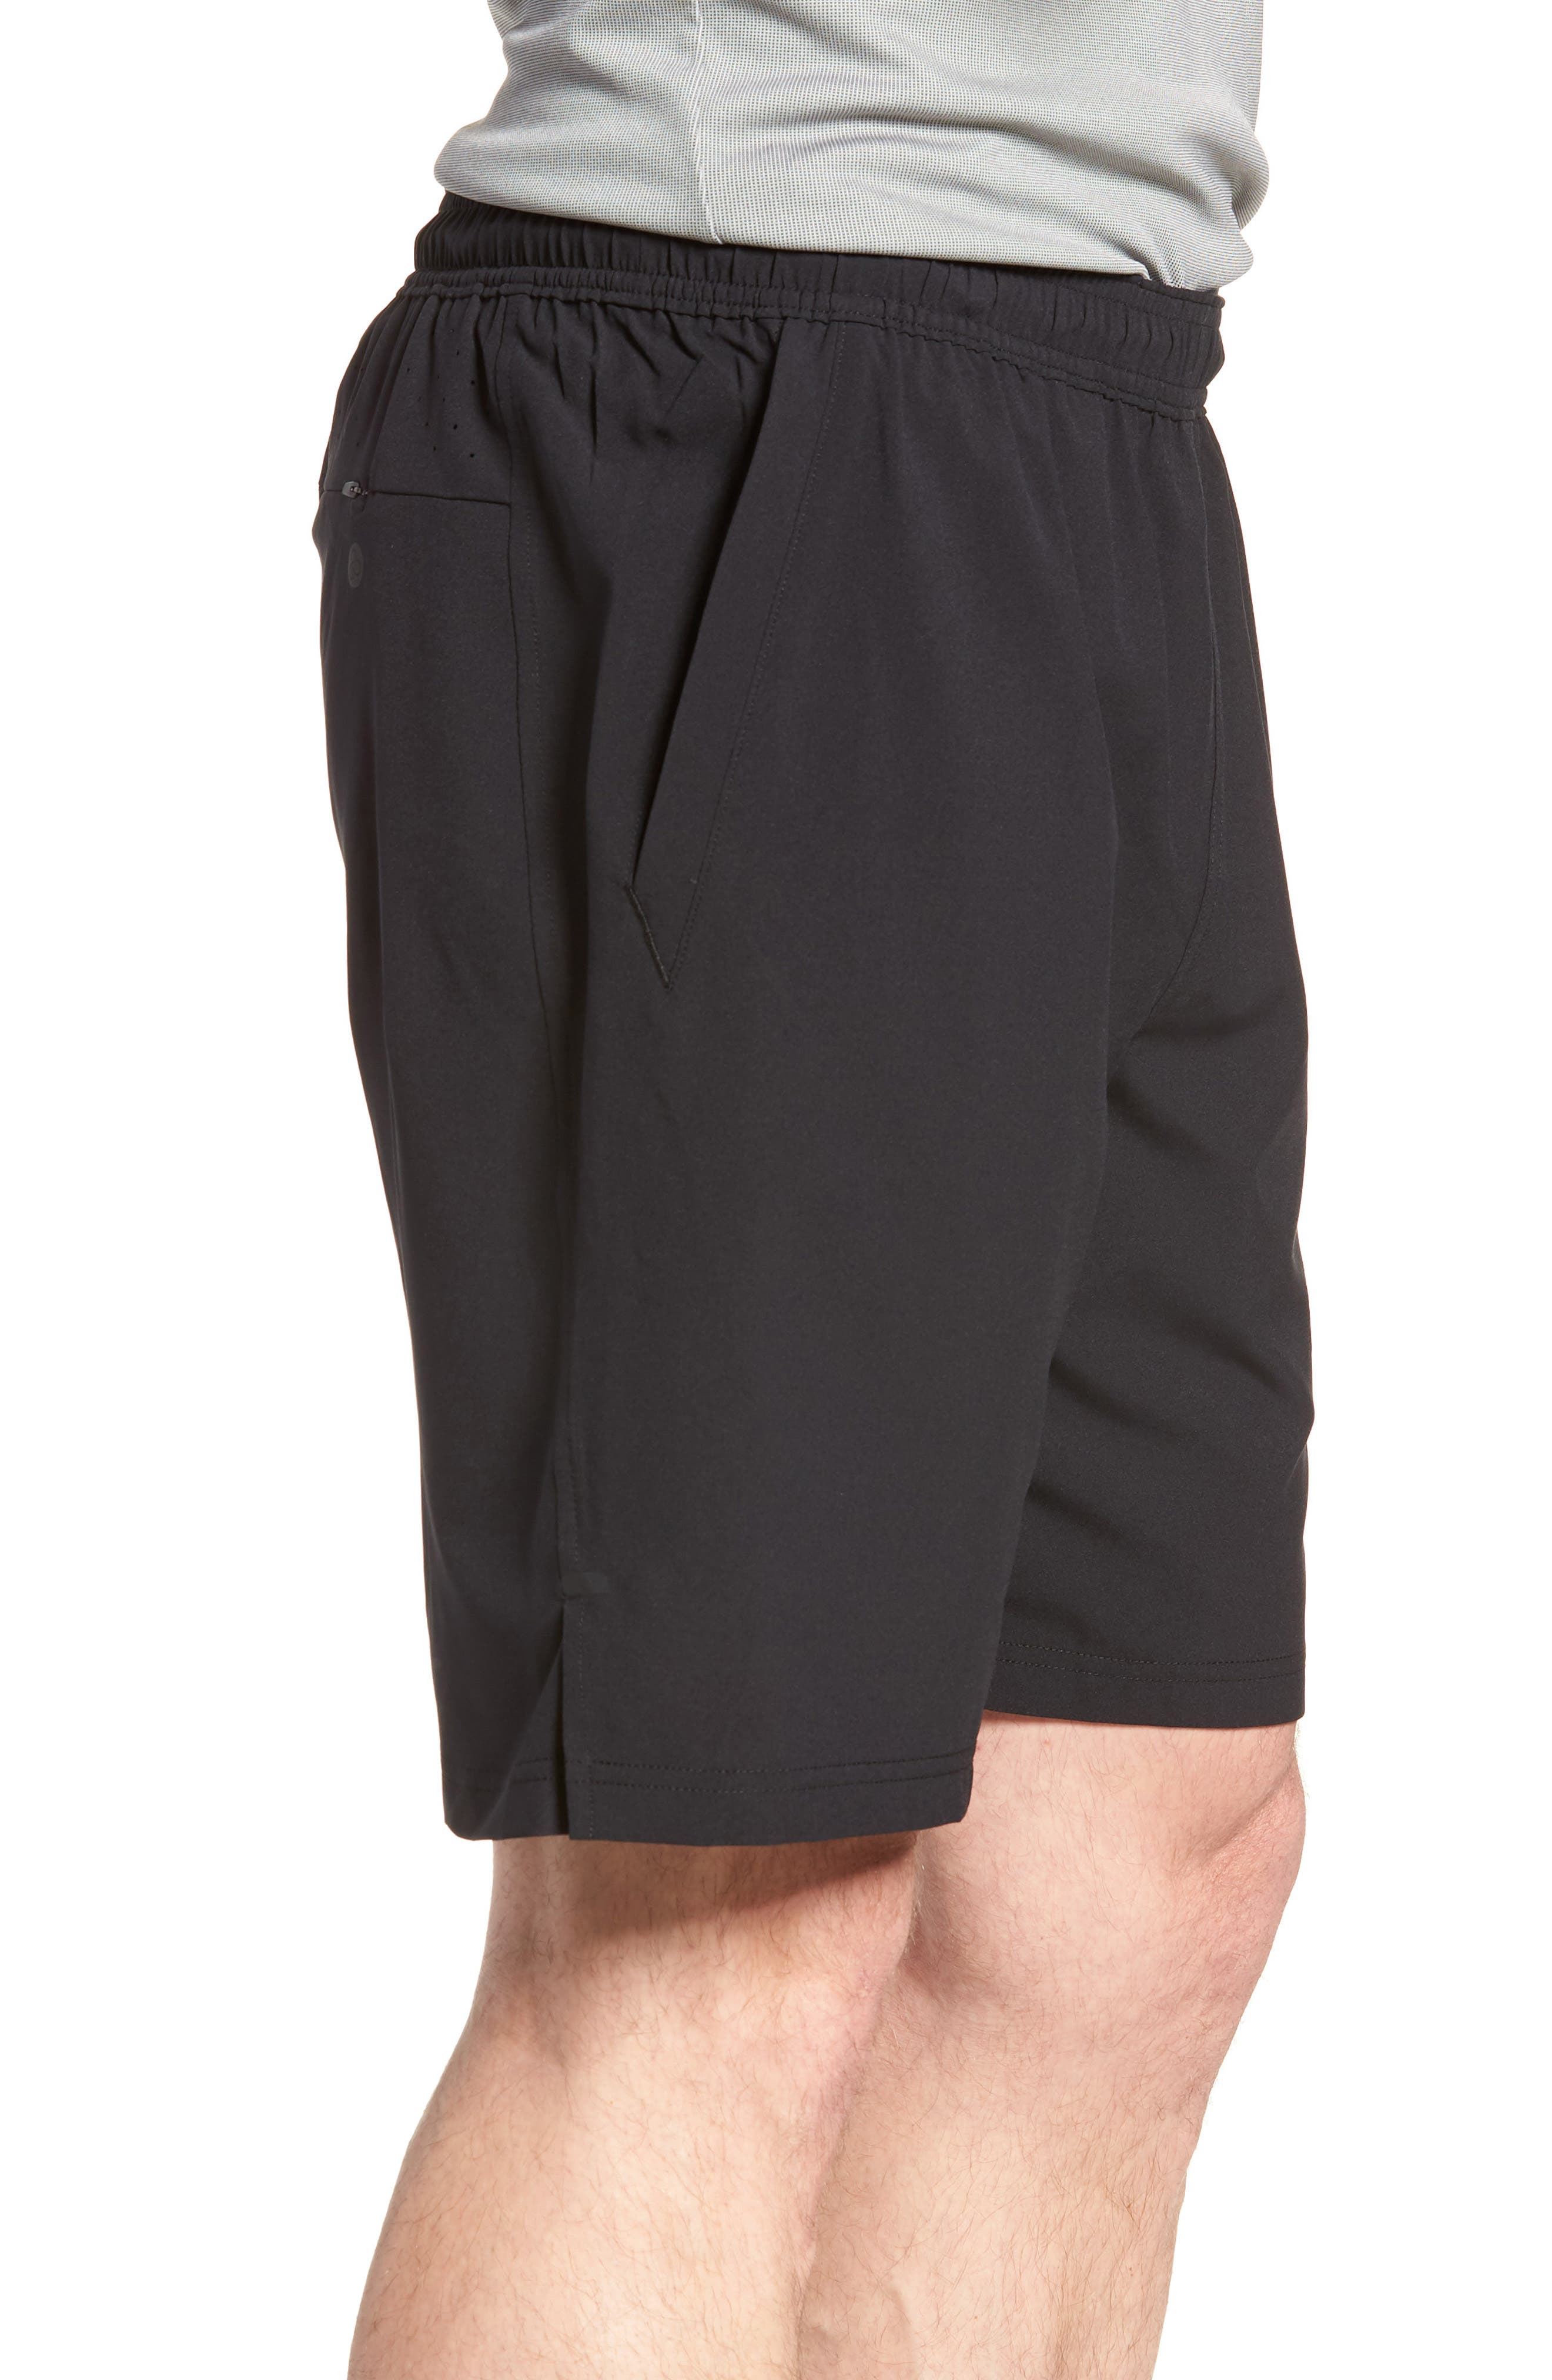 ZELLA, Graphite Perforated Shorts, Alternate thumbnail 4, color, BLACK